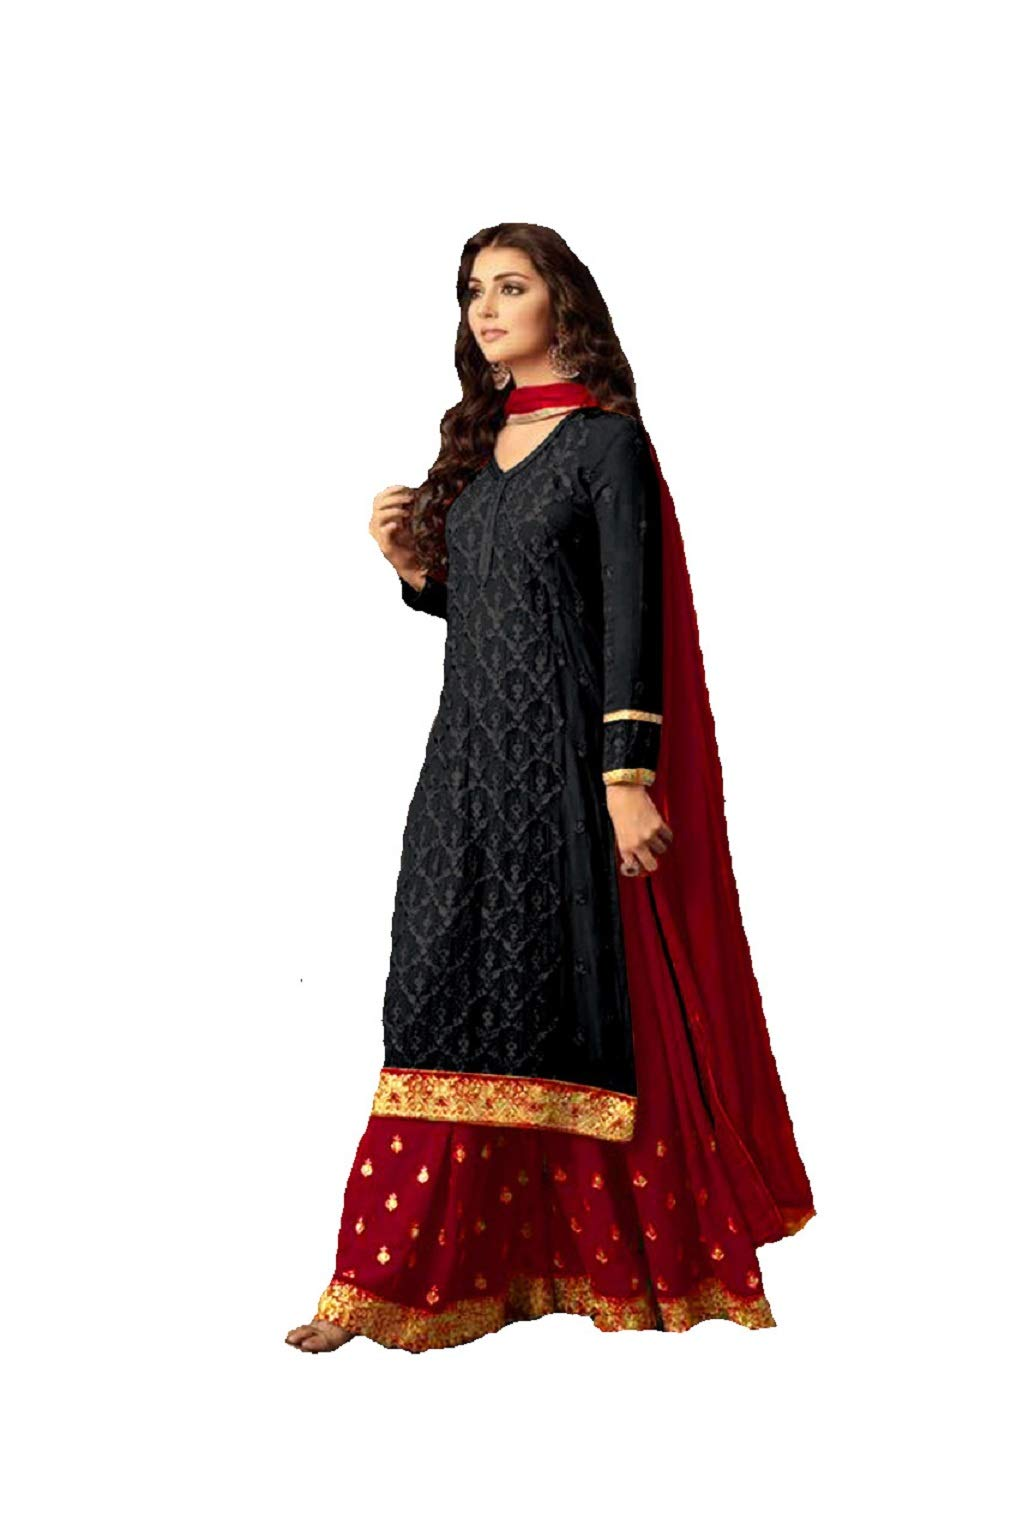 Delisa Readymade Eid Special Indian/Pakistani Party Wear Palazzo Style Salwar Kameez for Women (0X-PLUS-48, Black)